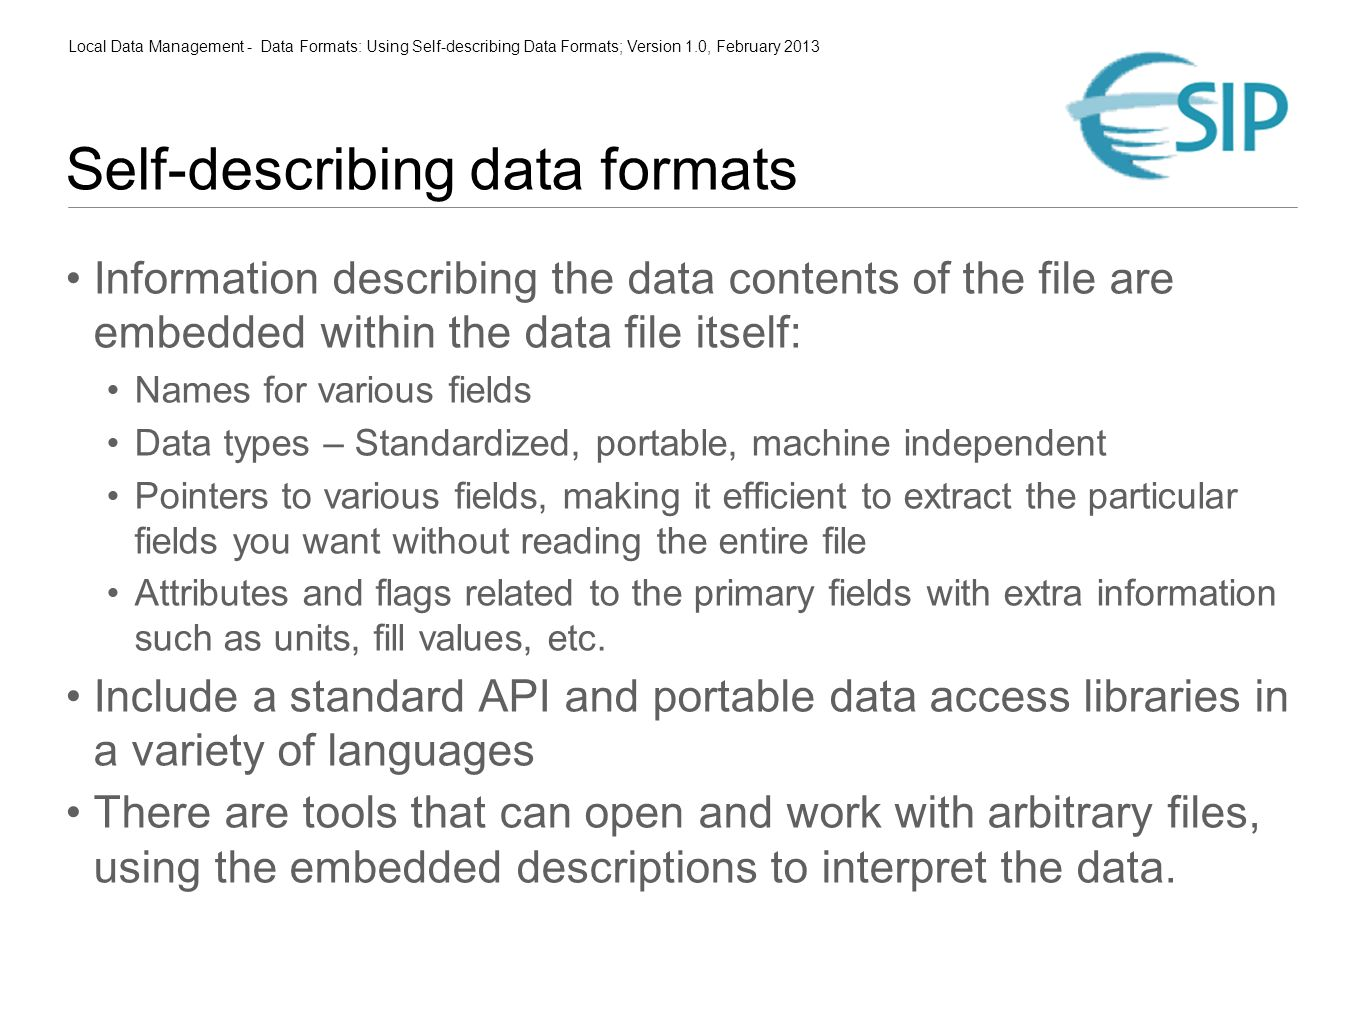 Local Data Management - Data Formats: Using Self-describing Data Formats; Version 1.0, February 2013 Self-describing data formats Information describing the data contents of the file are embedded within the data file itself: Names for various fields Data types – Standardized, portable, machine independent Pointers to various fields, making it efficient to extract the particular fields you want without reading the entire file Attributes and flags related to the primary fields with extra information such as units, fill values, etc.